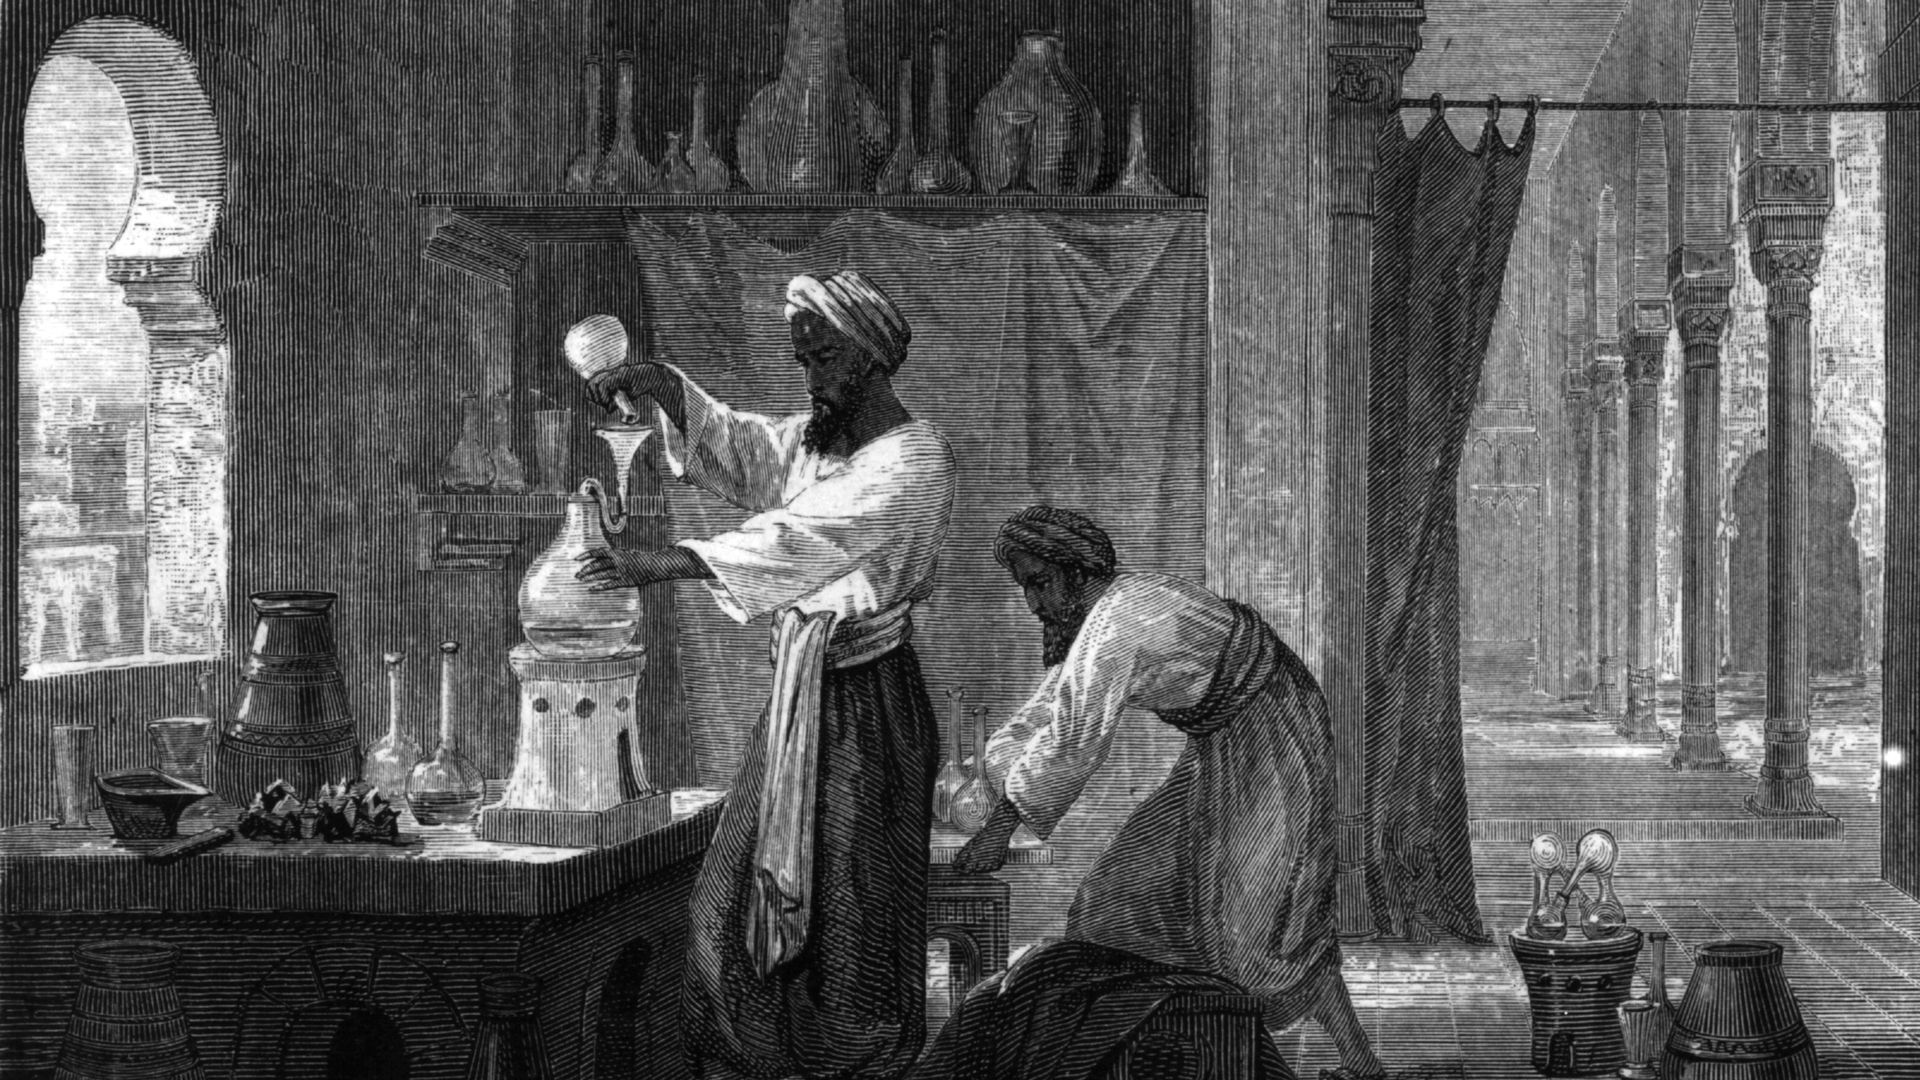 An illustration of a scientist in the Middle Ages pouring liquid from one vessel into another